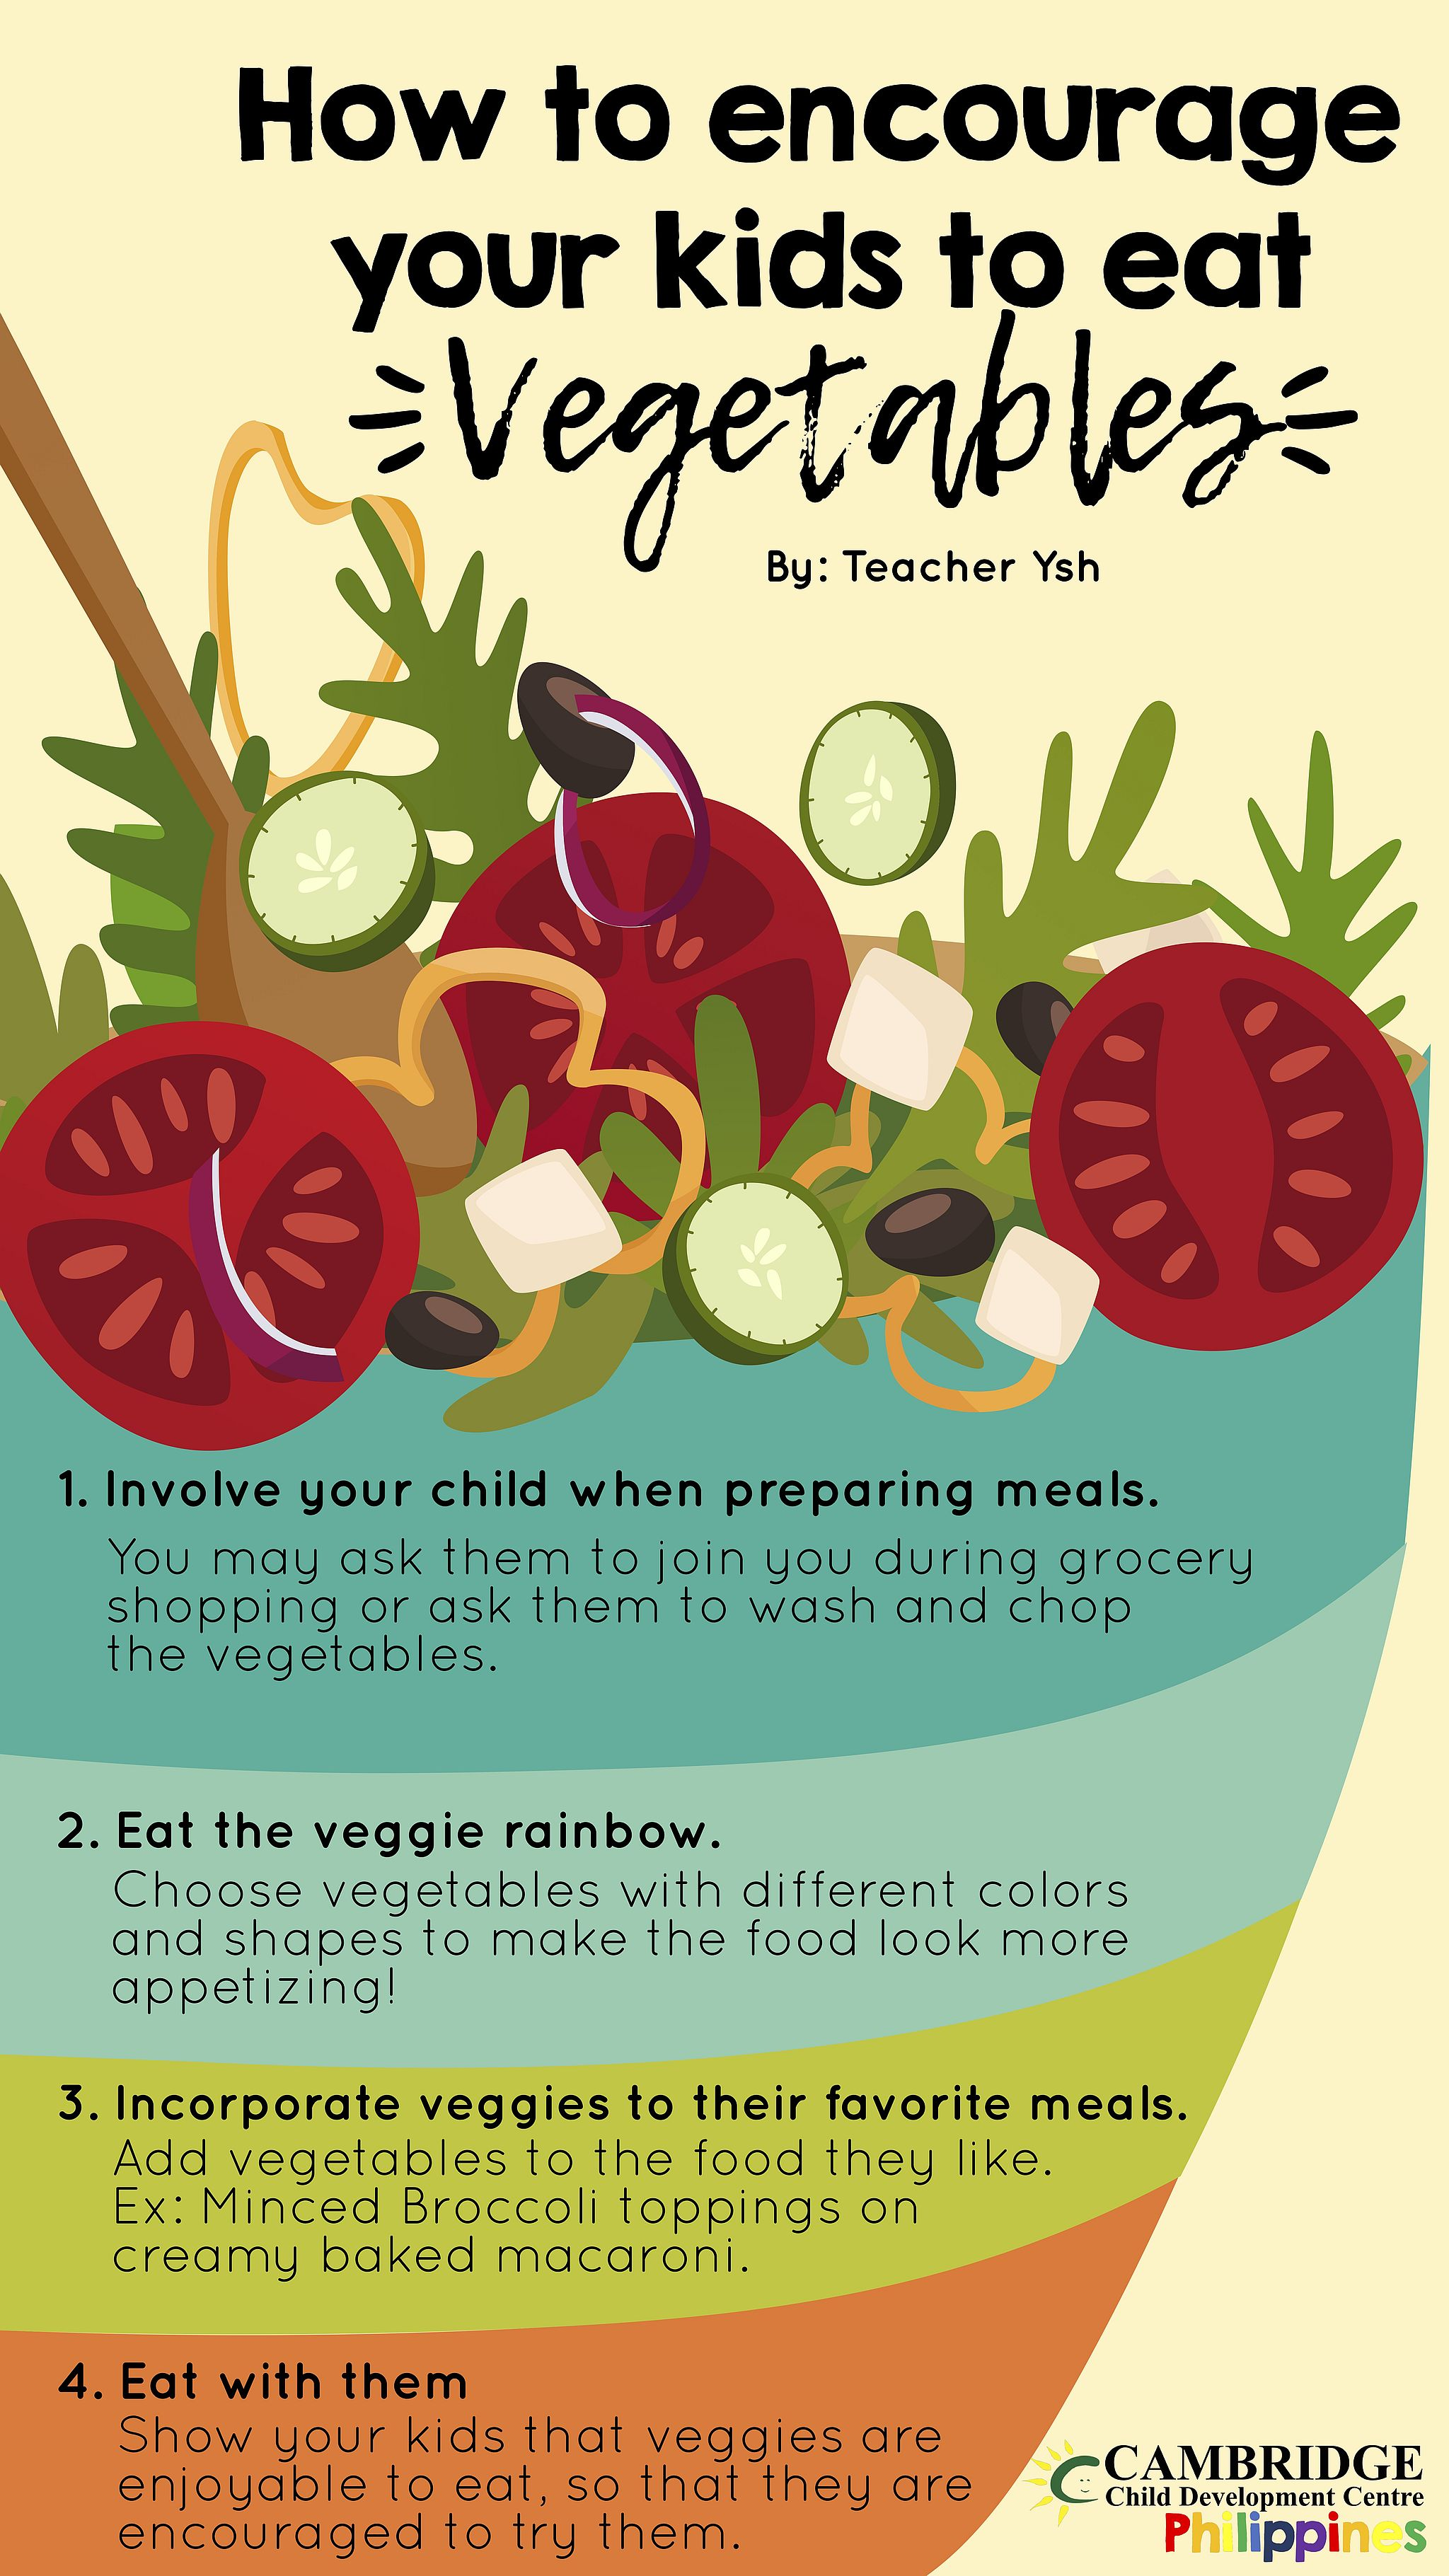 How to Encourage Your Kids to Eat Vegetables